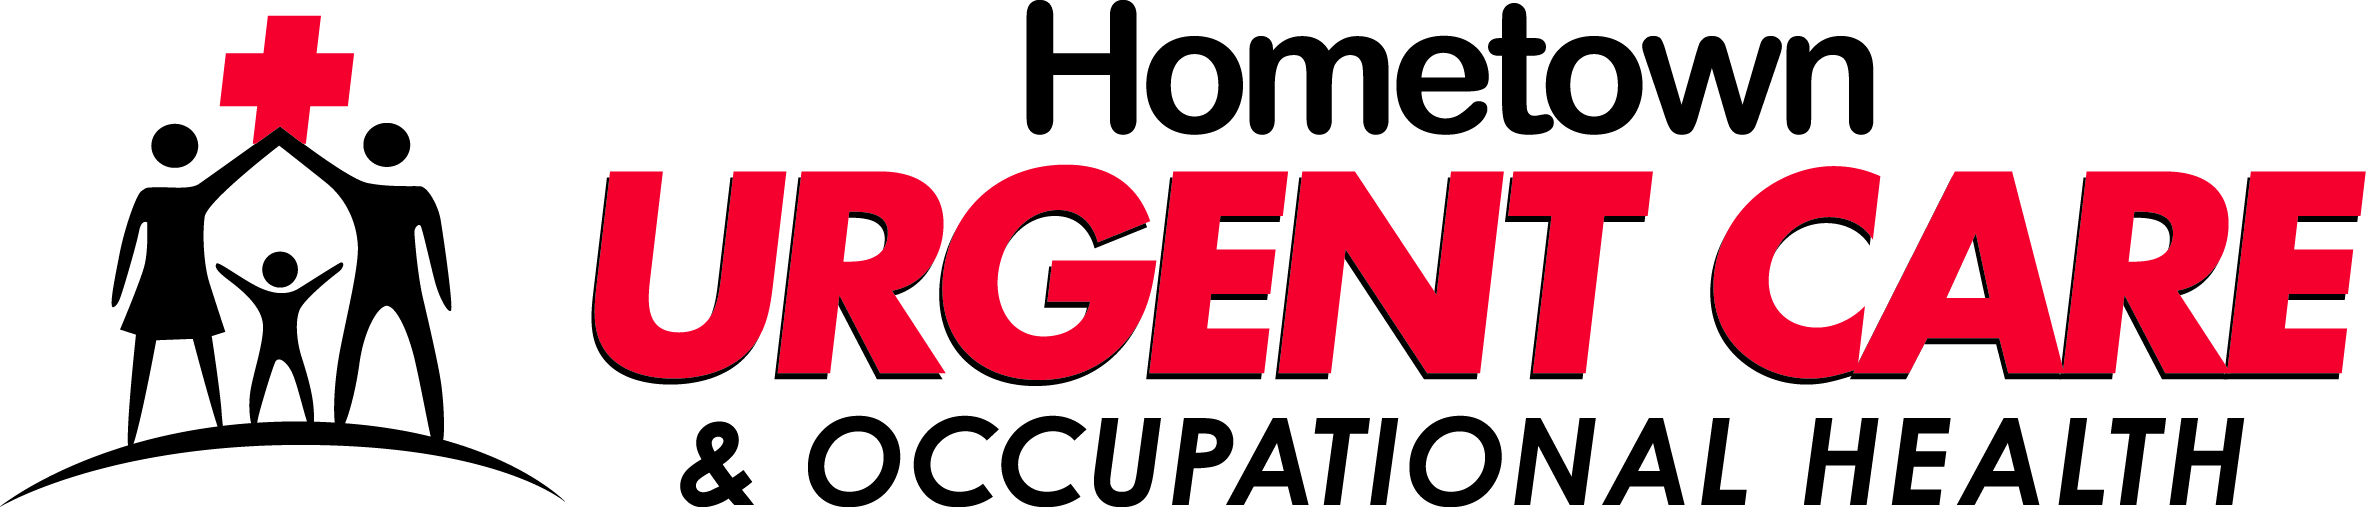 Ohio's Top Rated Local® Urgent Care Centers Award Winner: Hometown Urgent Care